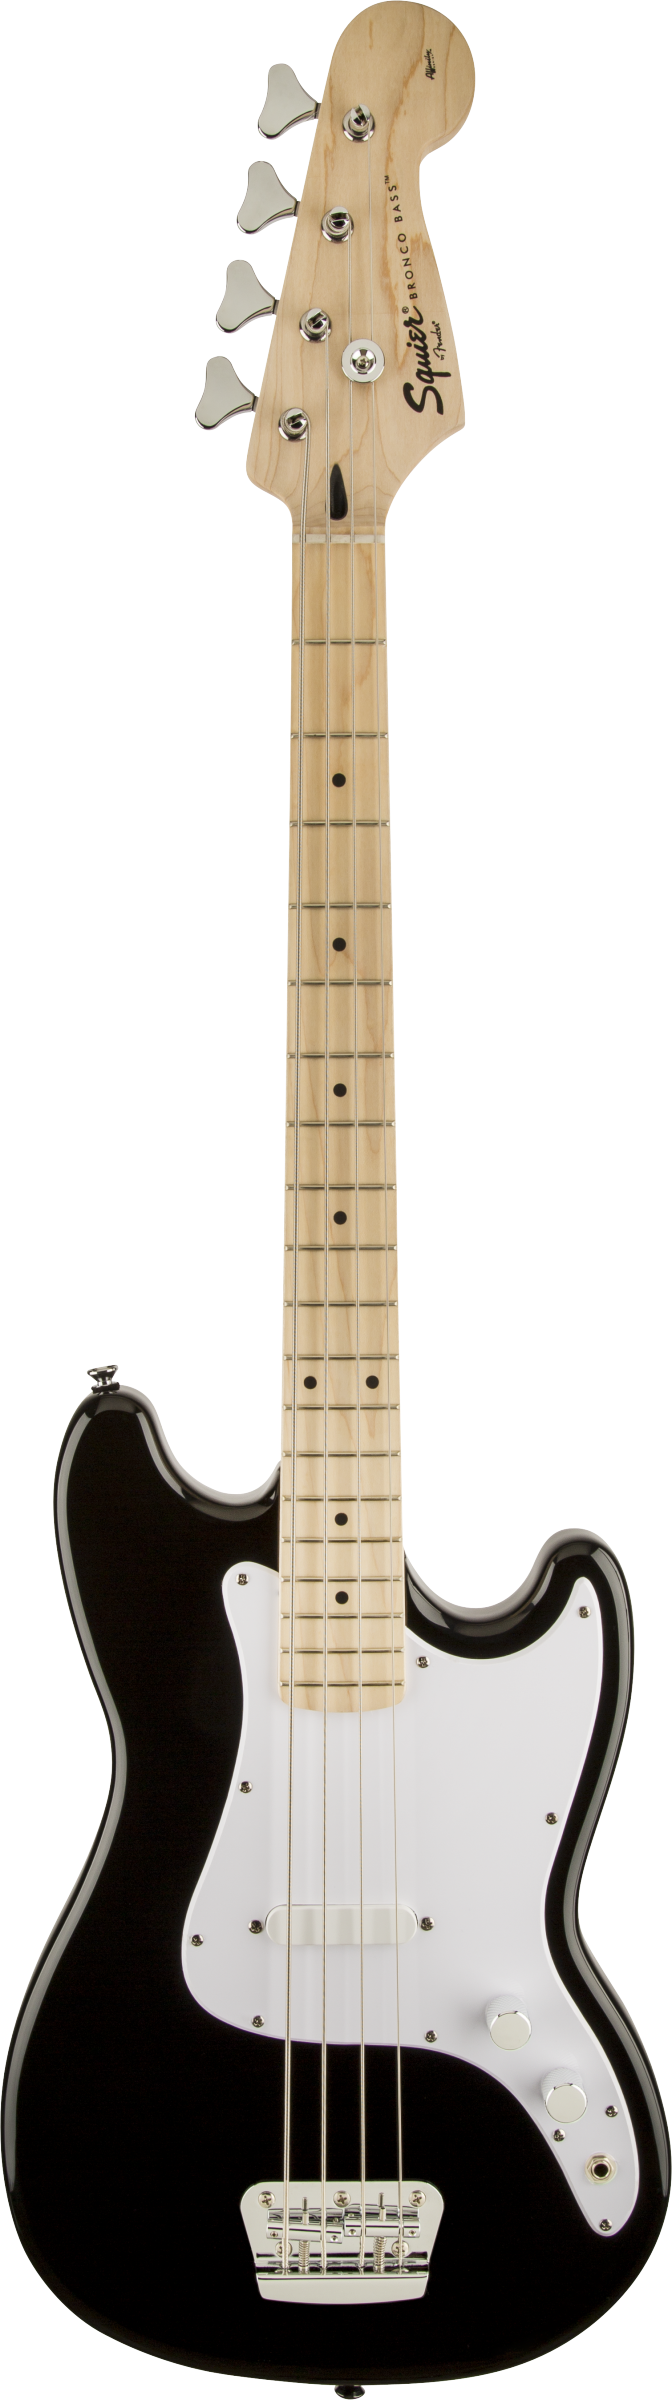 Squier Bronco™ Bass, Maple Fingerboard, Maple Fingerboard, Black